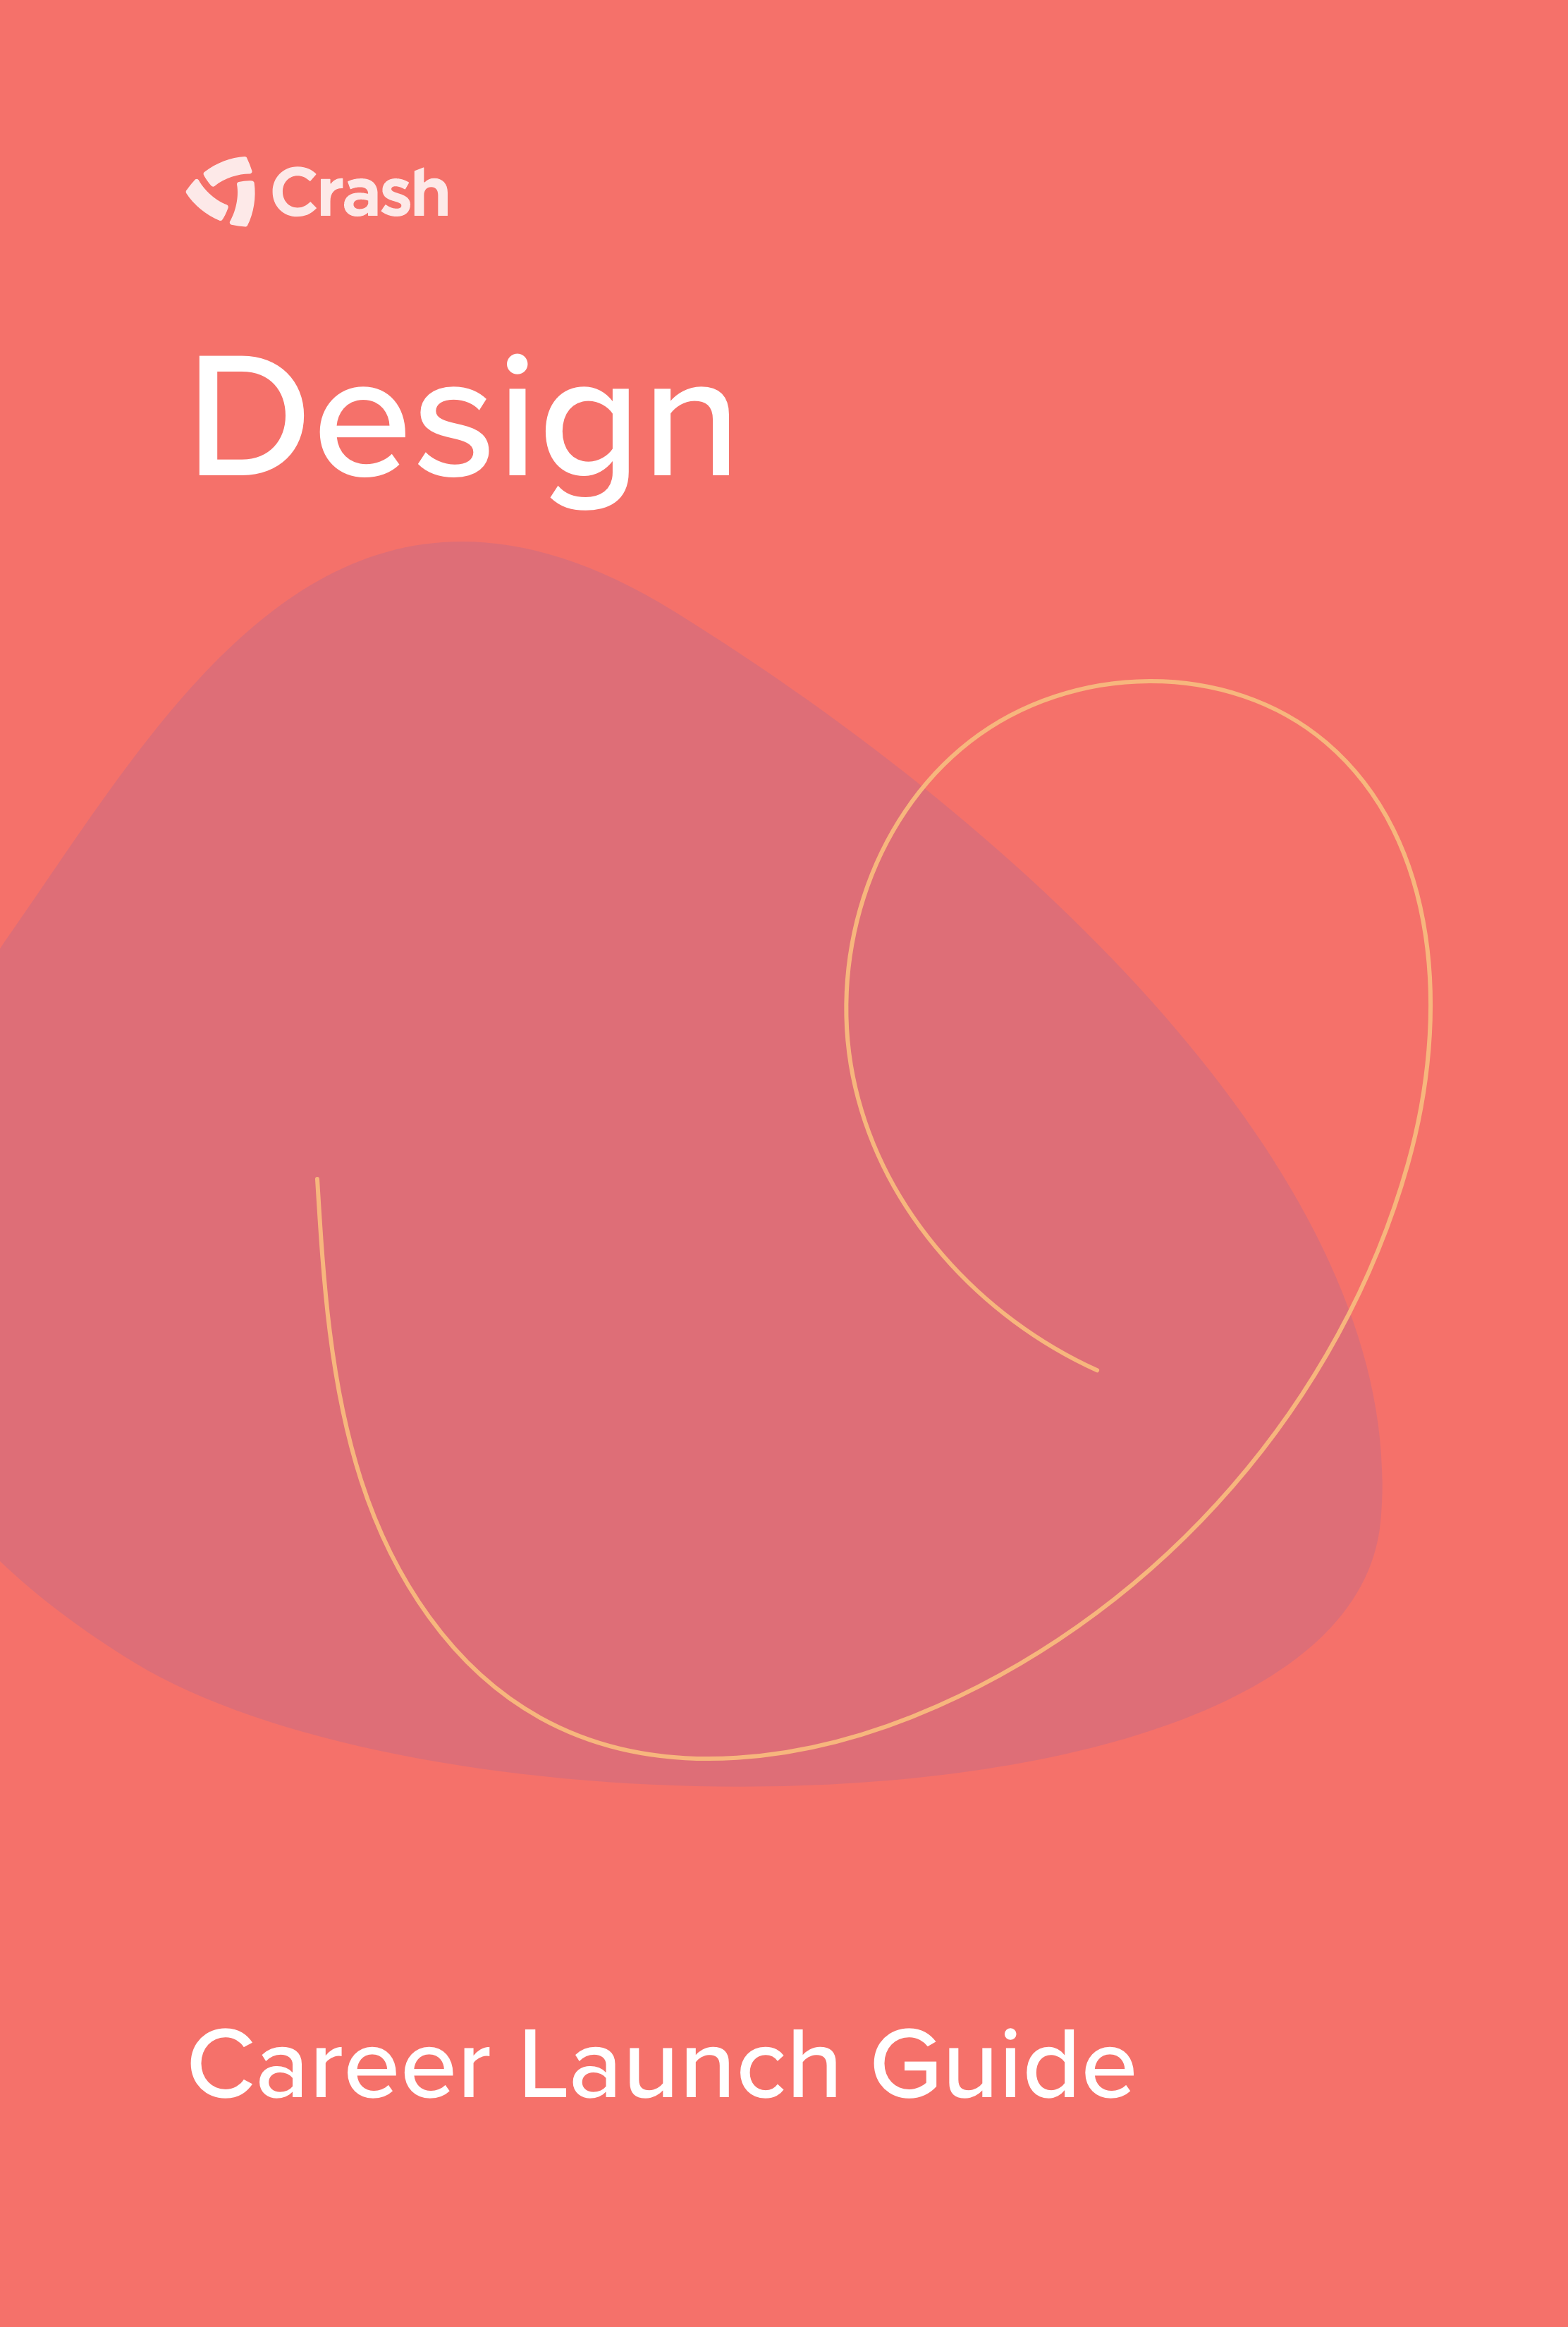 design careers crash guide cover image